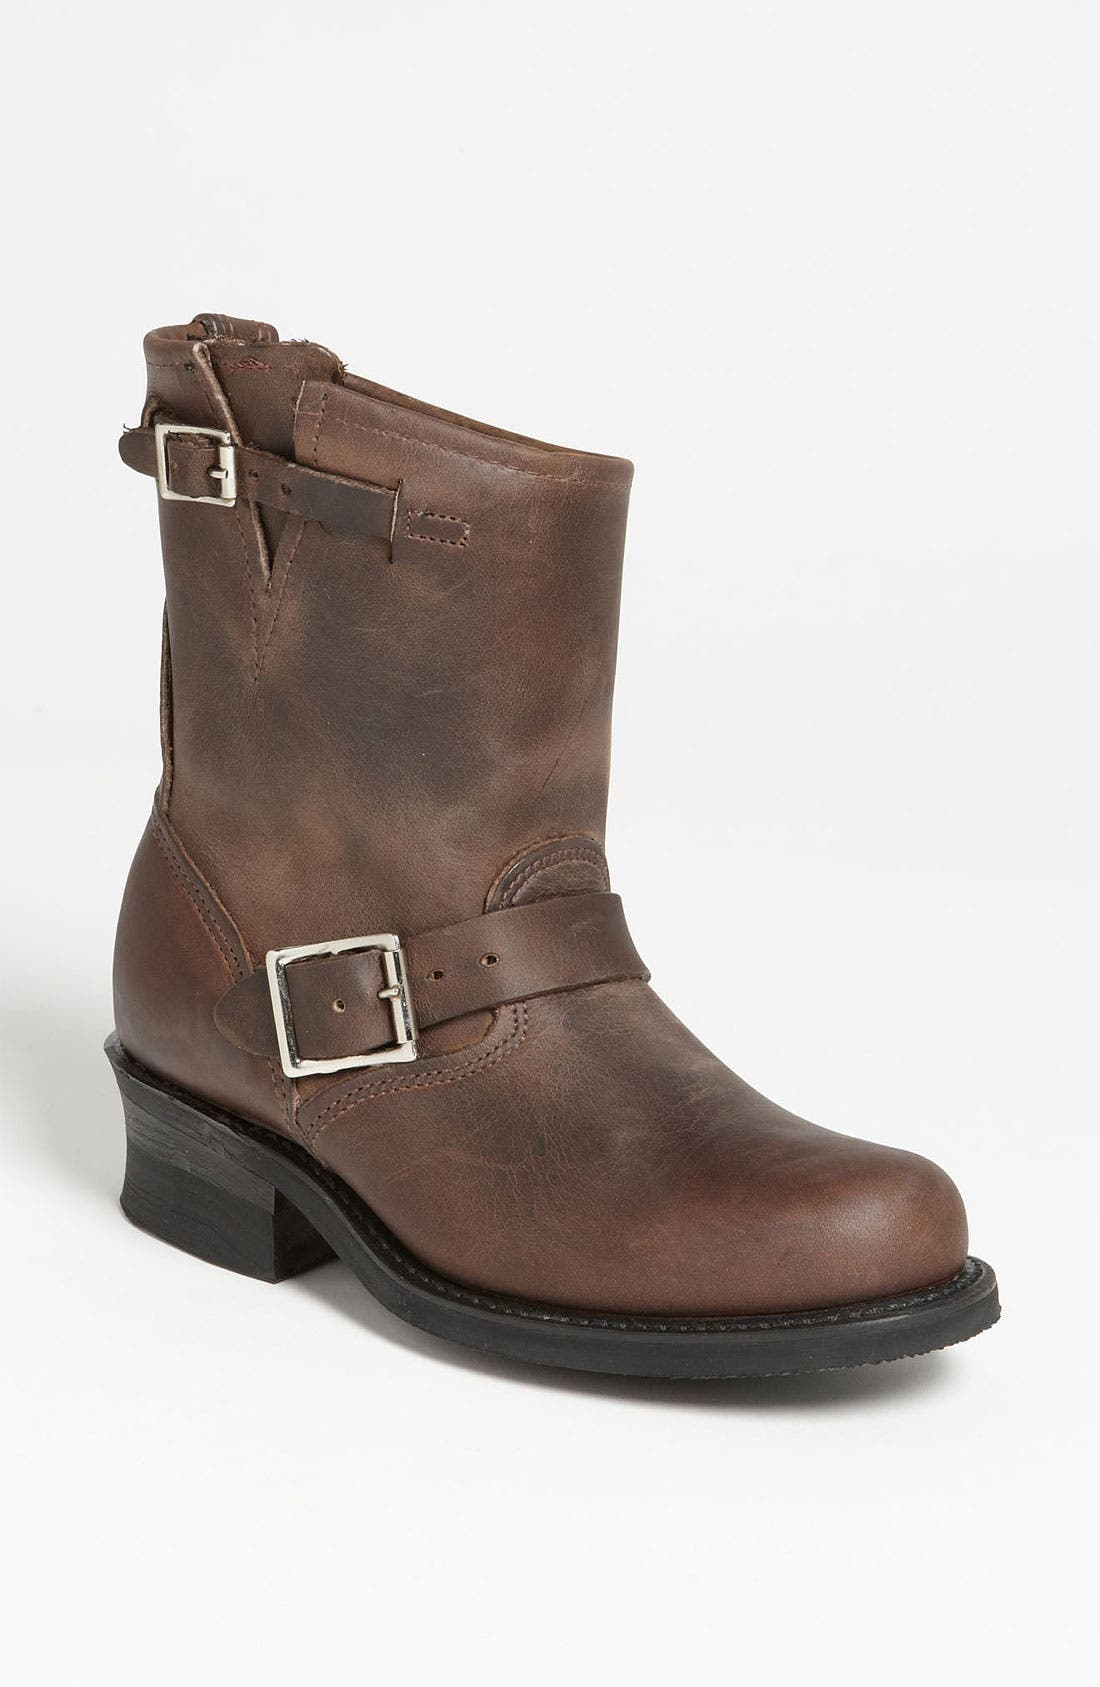 Alternate Image 1 Selected - Frye 'Engineer 8R' Leather Boot (Women)